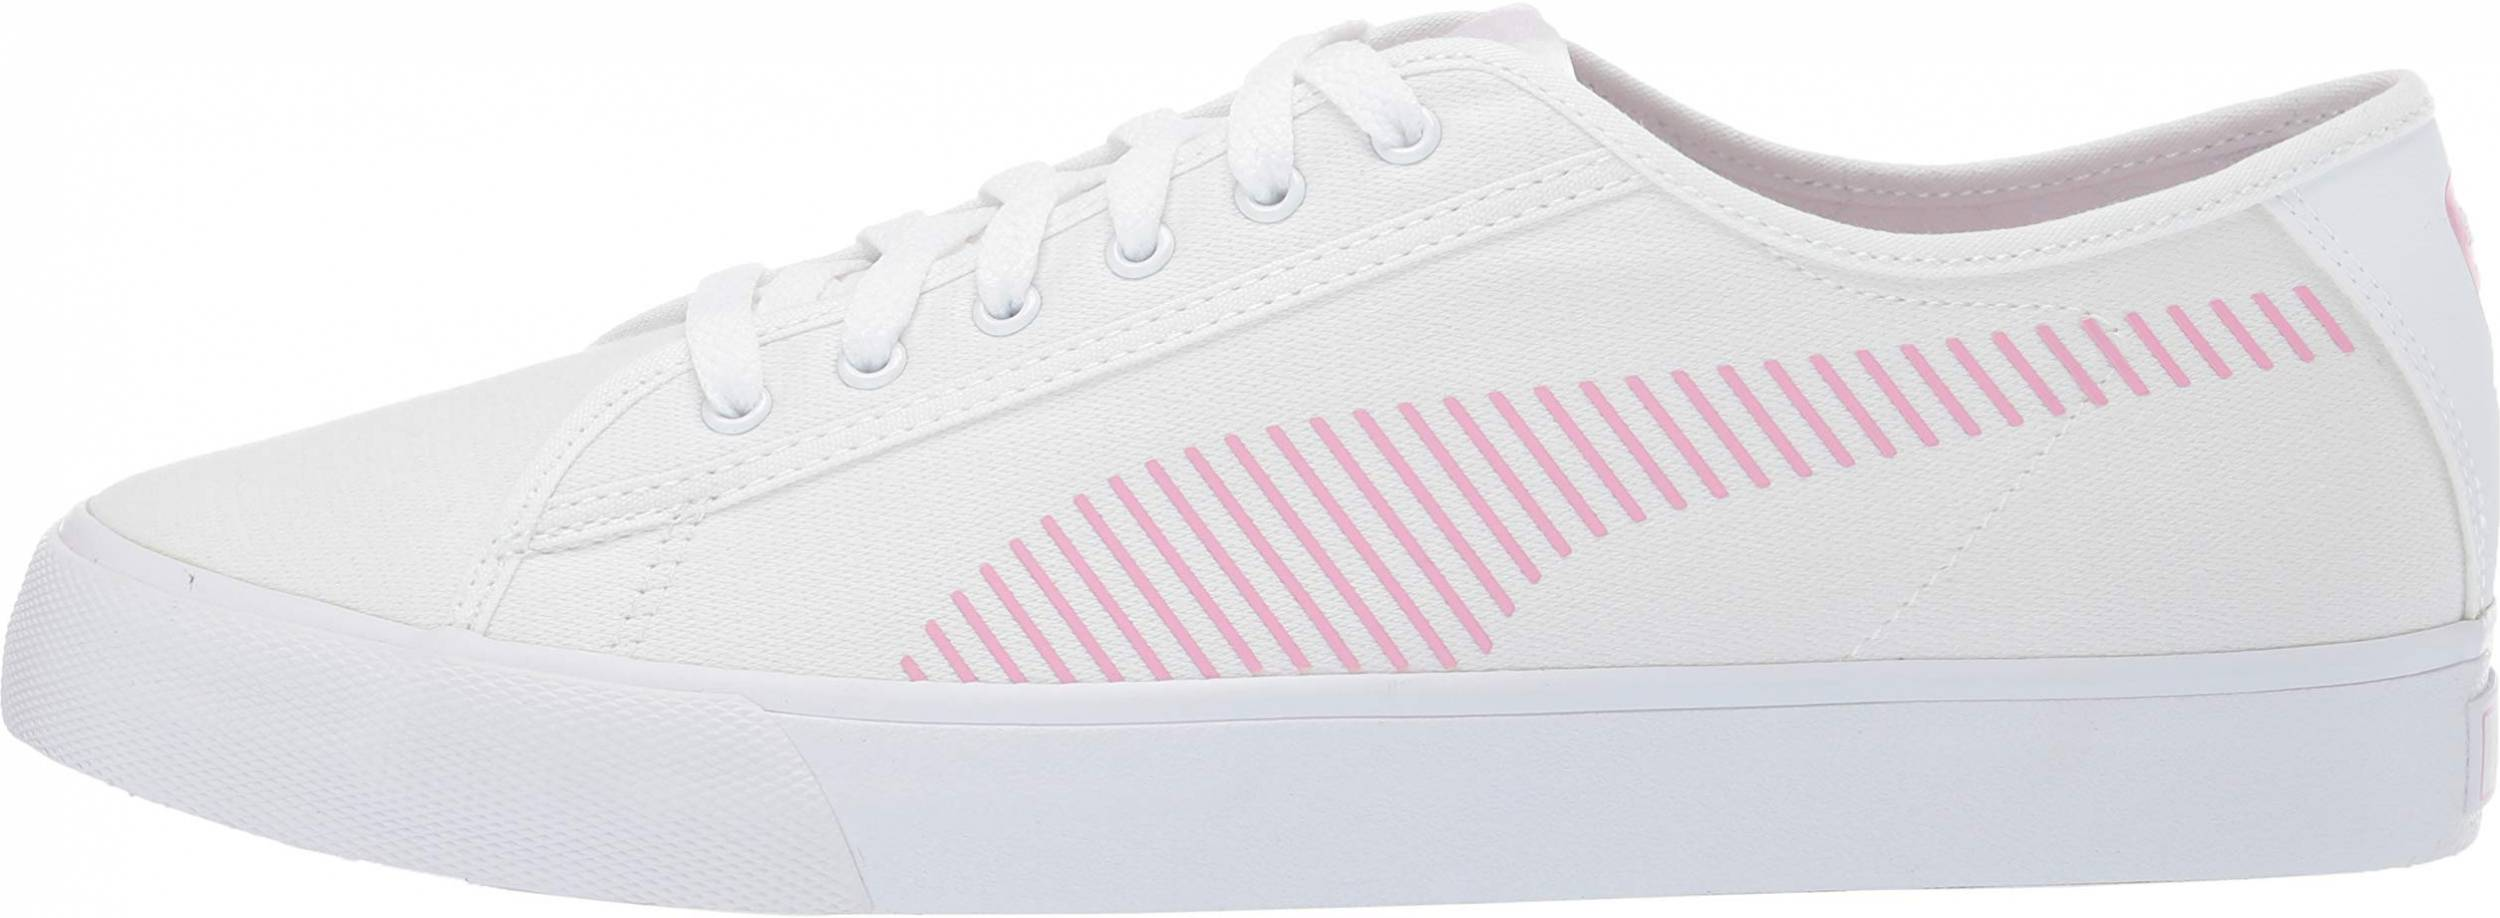 Save 46% on White Puma Sneakers (62